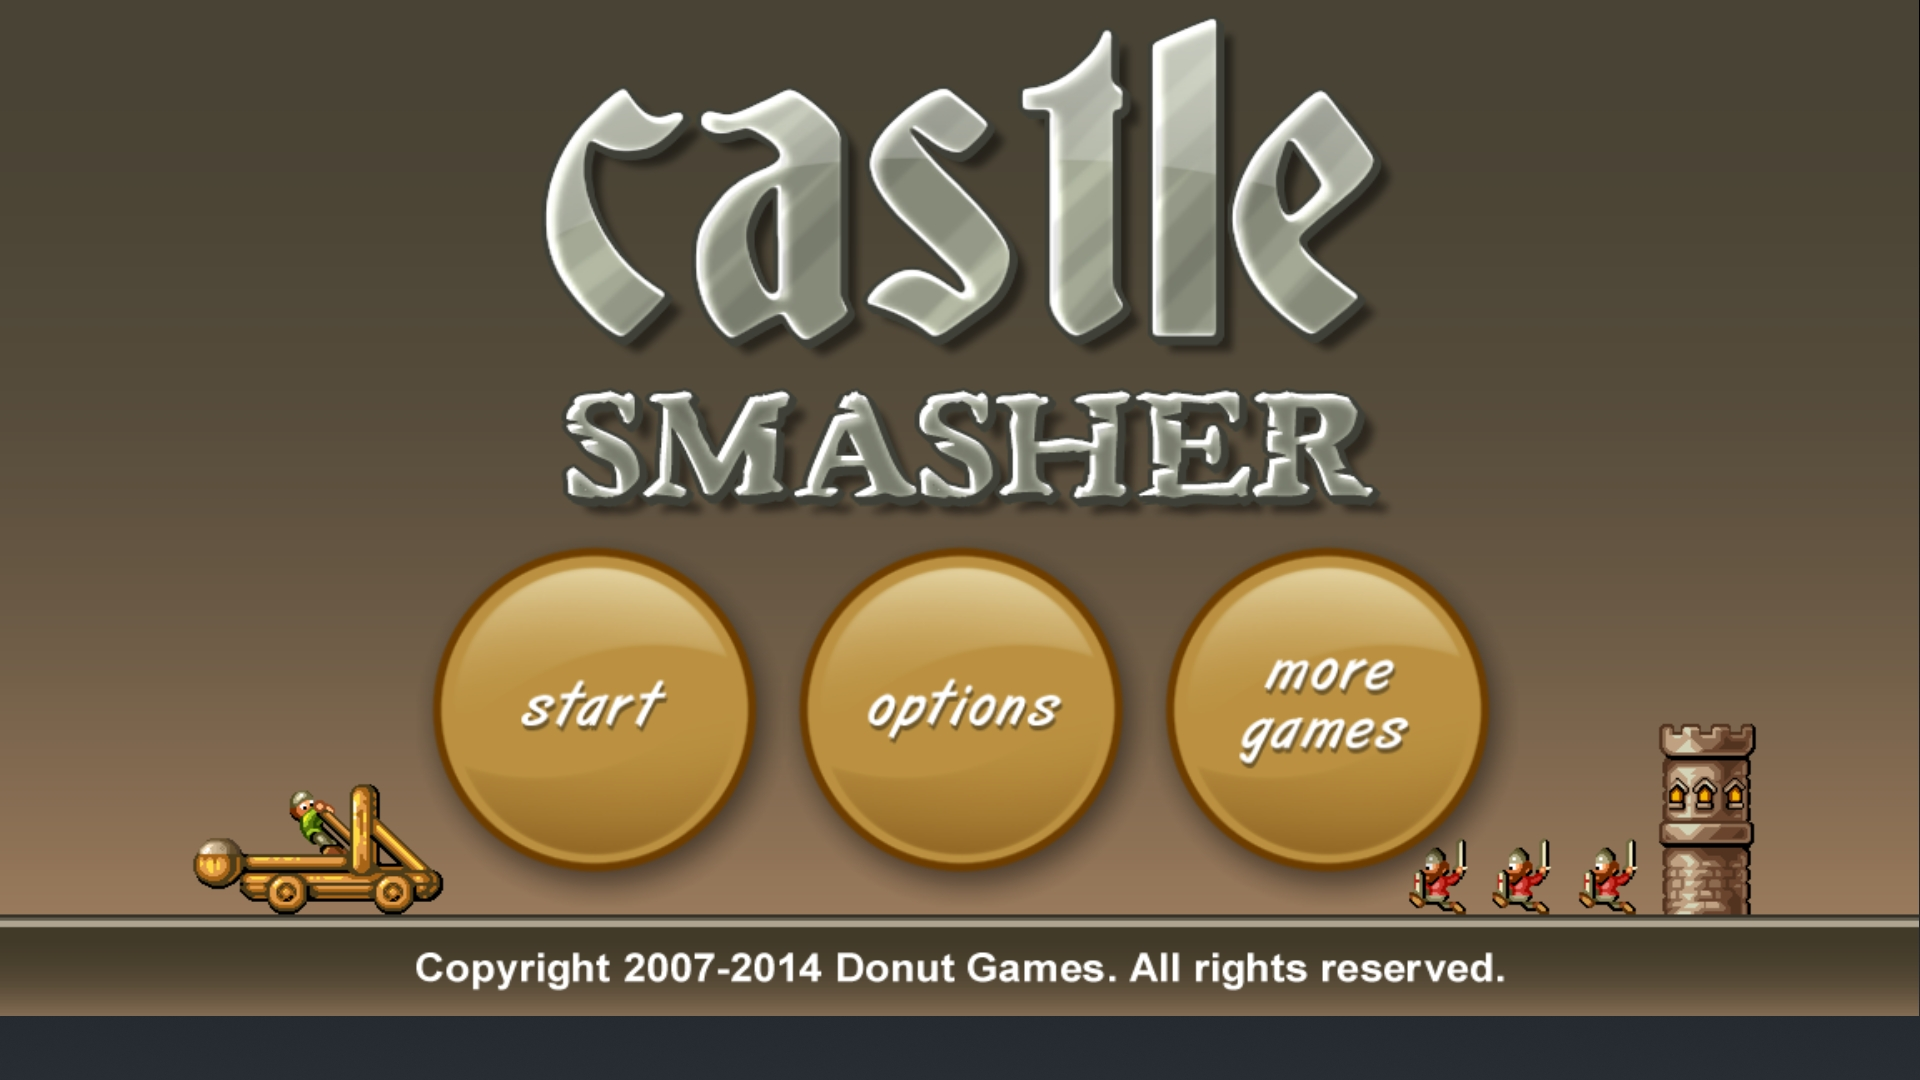 Bamse: Castle Smasher: Challenges: 06 Bounce (Android) 69 points on 2019-08-21 17:09:21